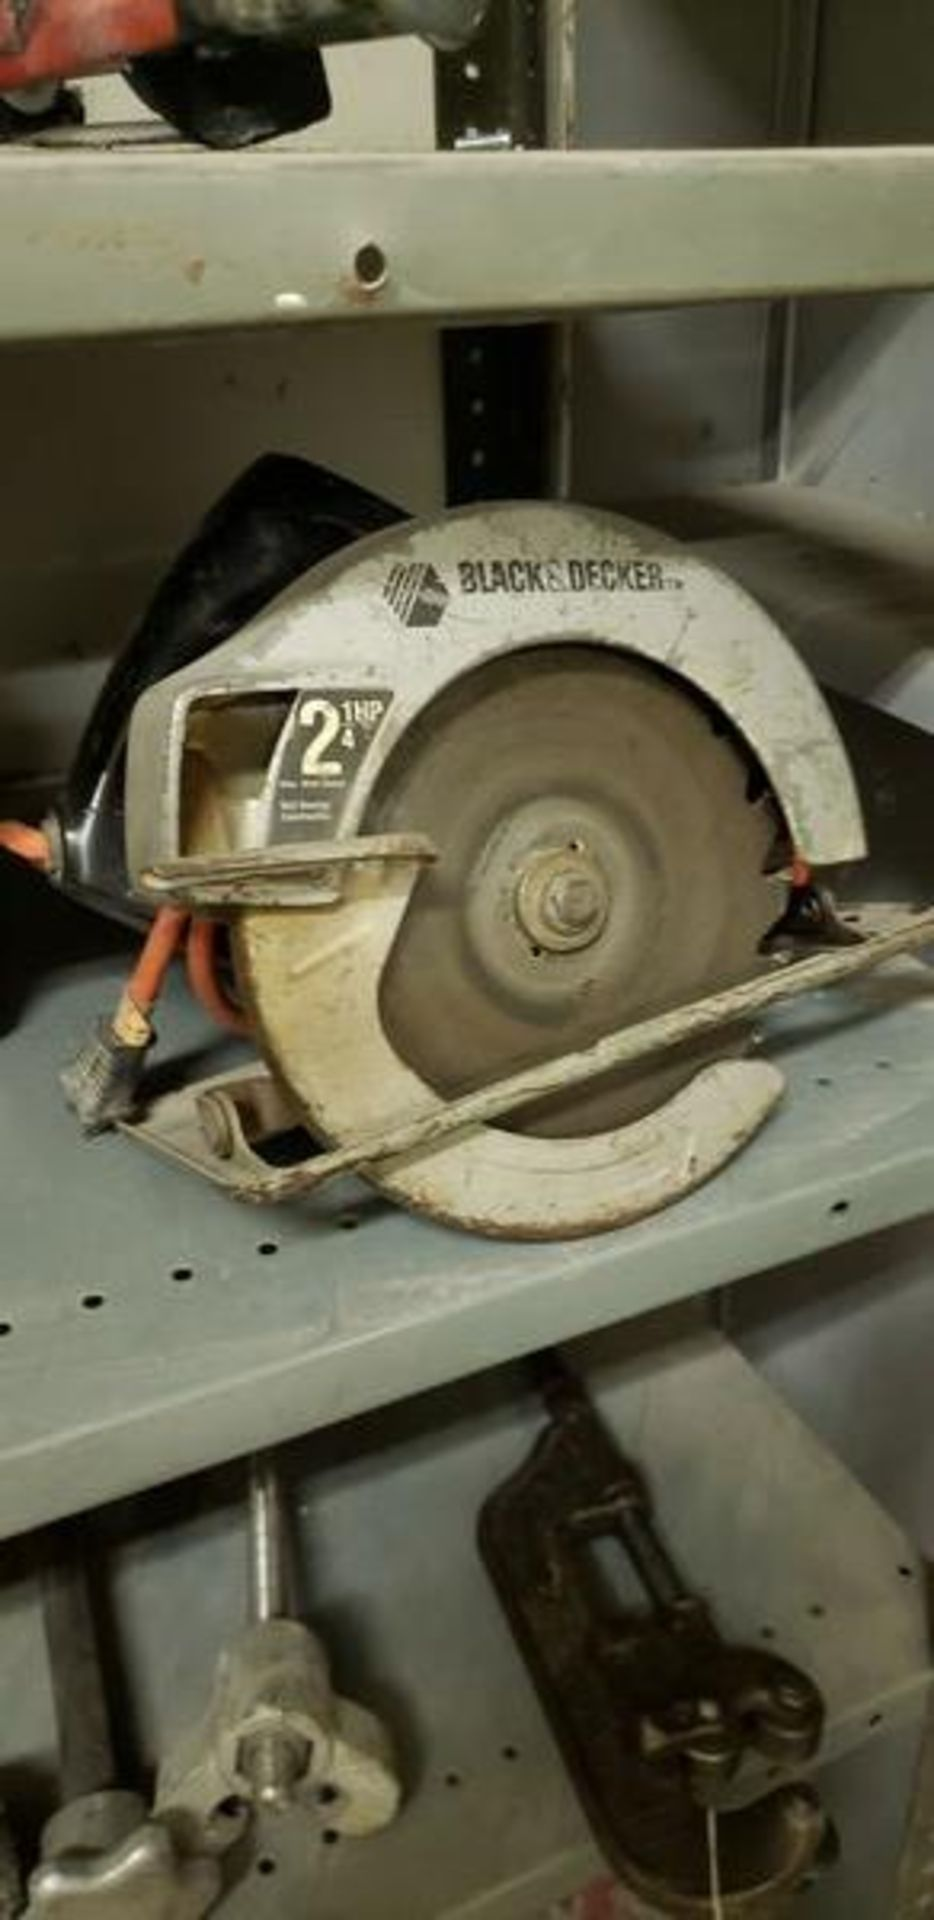 ASSORTED POWER TOOLS - 3 JIG SAWS AND 7.5 CIRCULAR SAW - Image 4 of 4